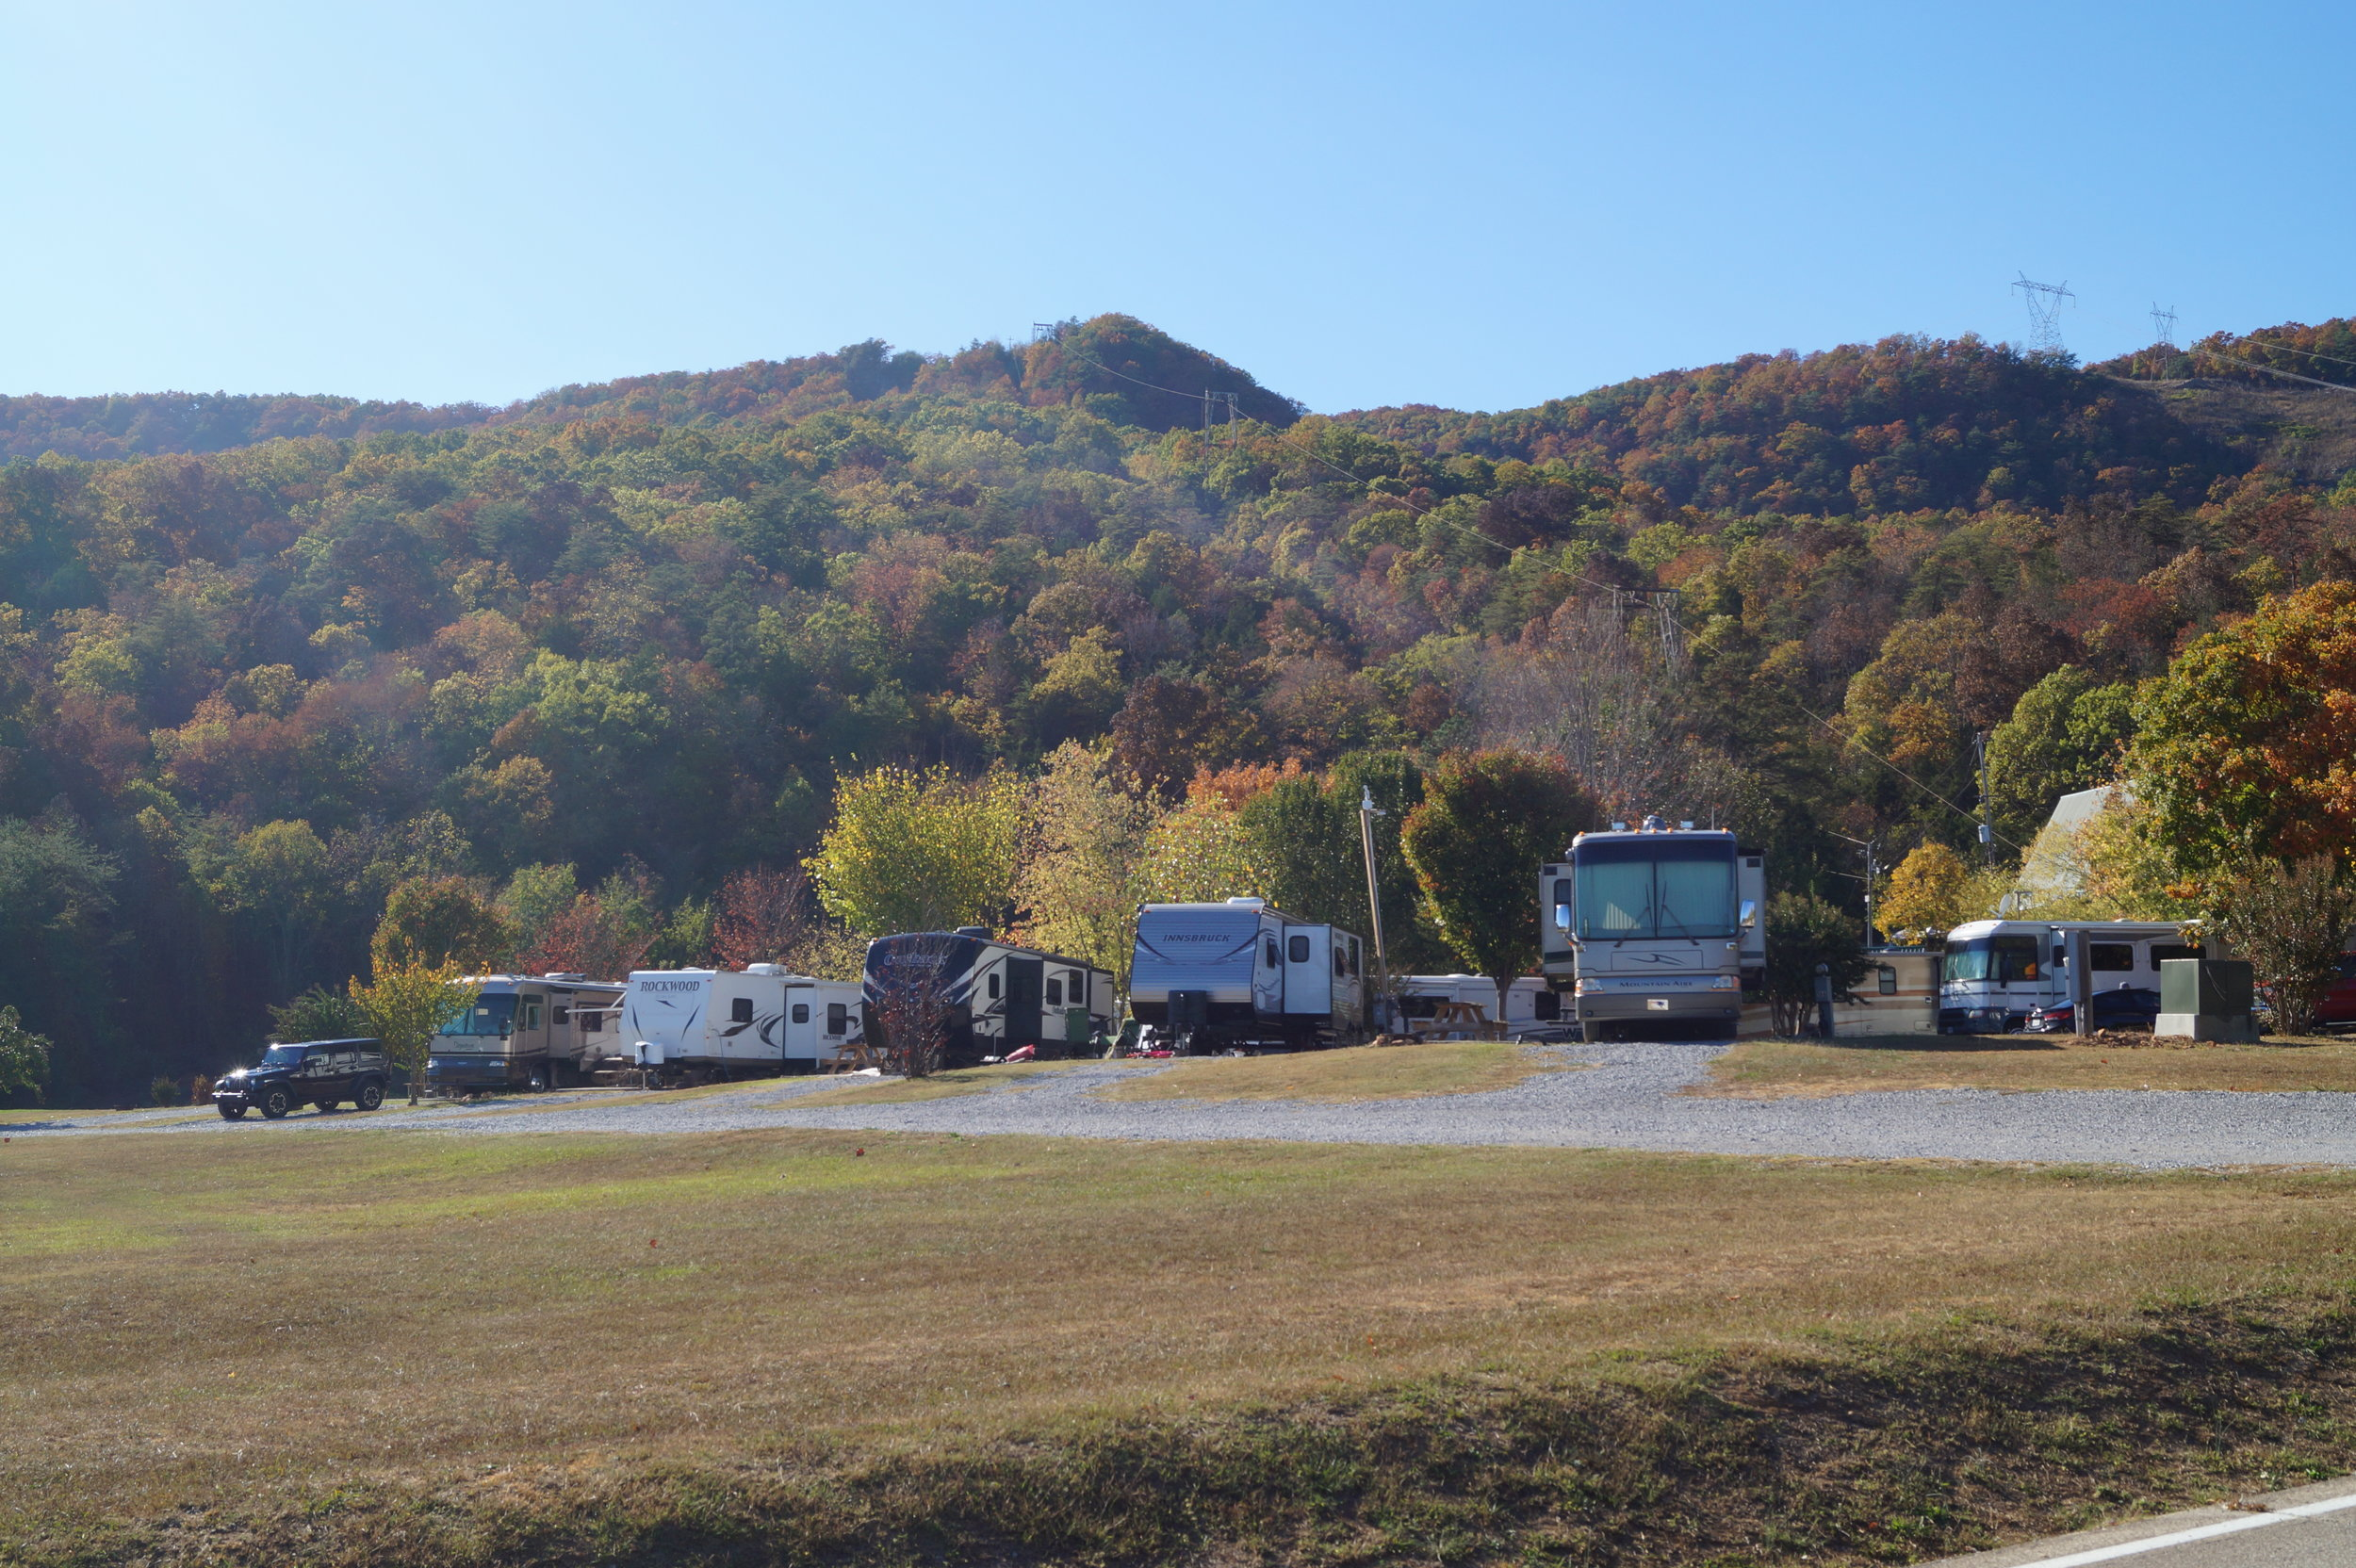 Get directions, reviews and information for raccoon mountain campground in chattanooga, tn. Rvs Camp Sites Raccoon Mountain Caverns Campground